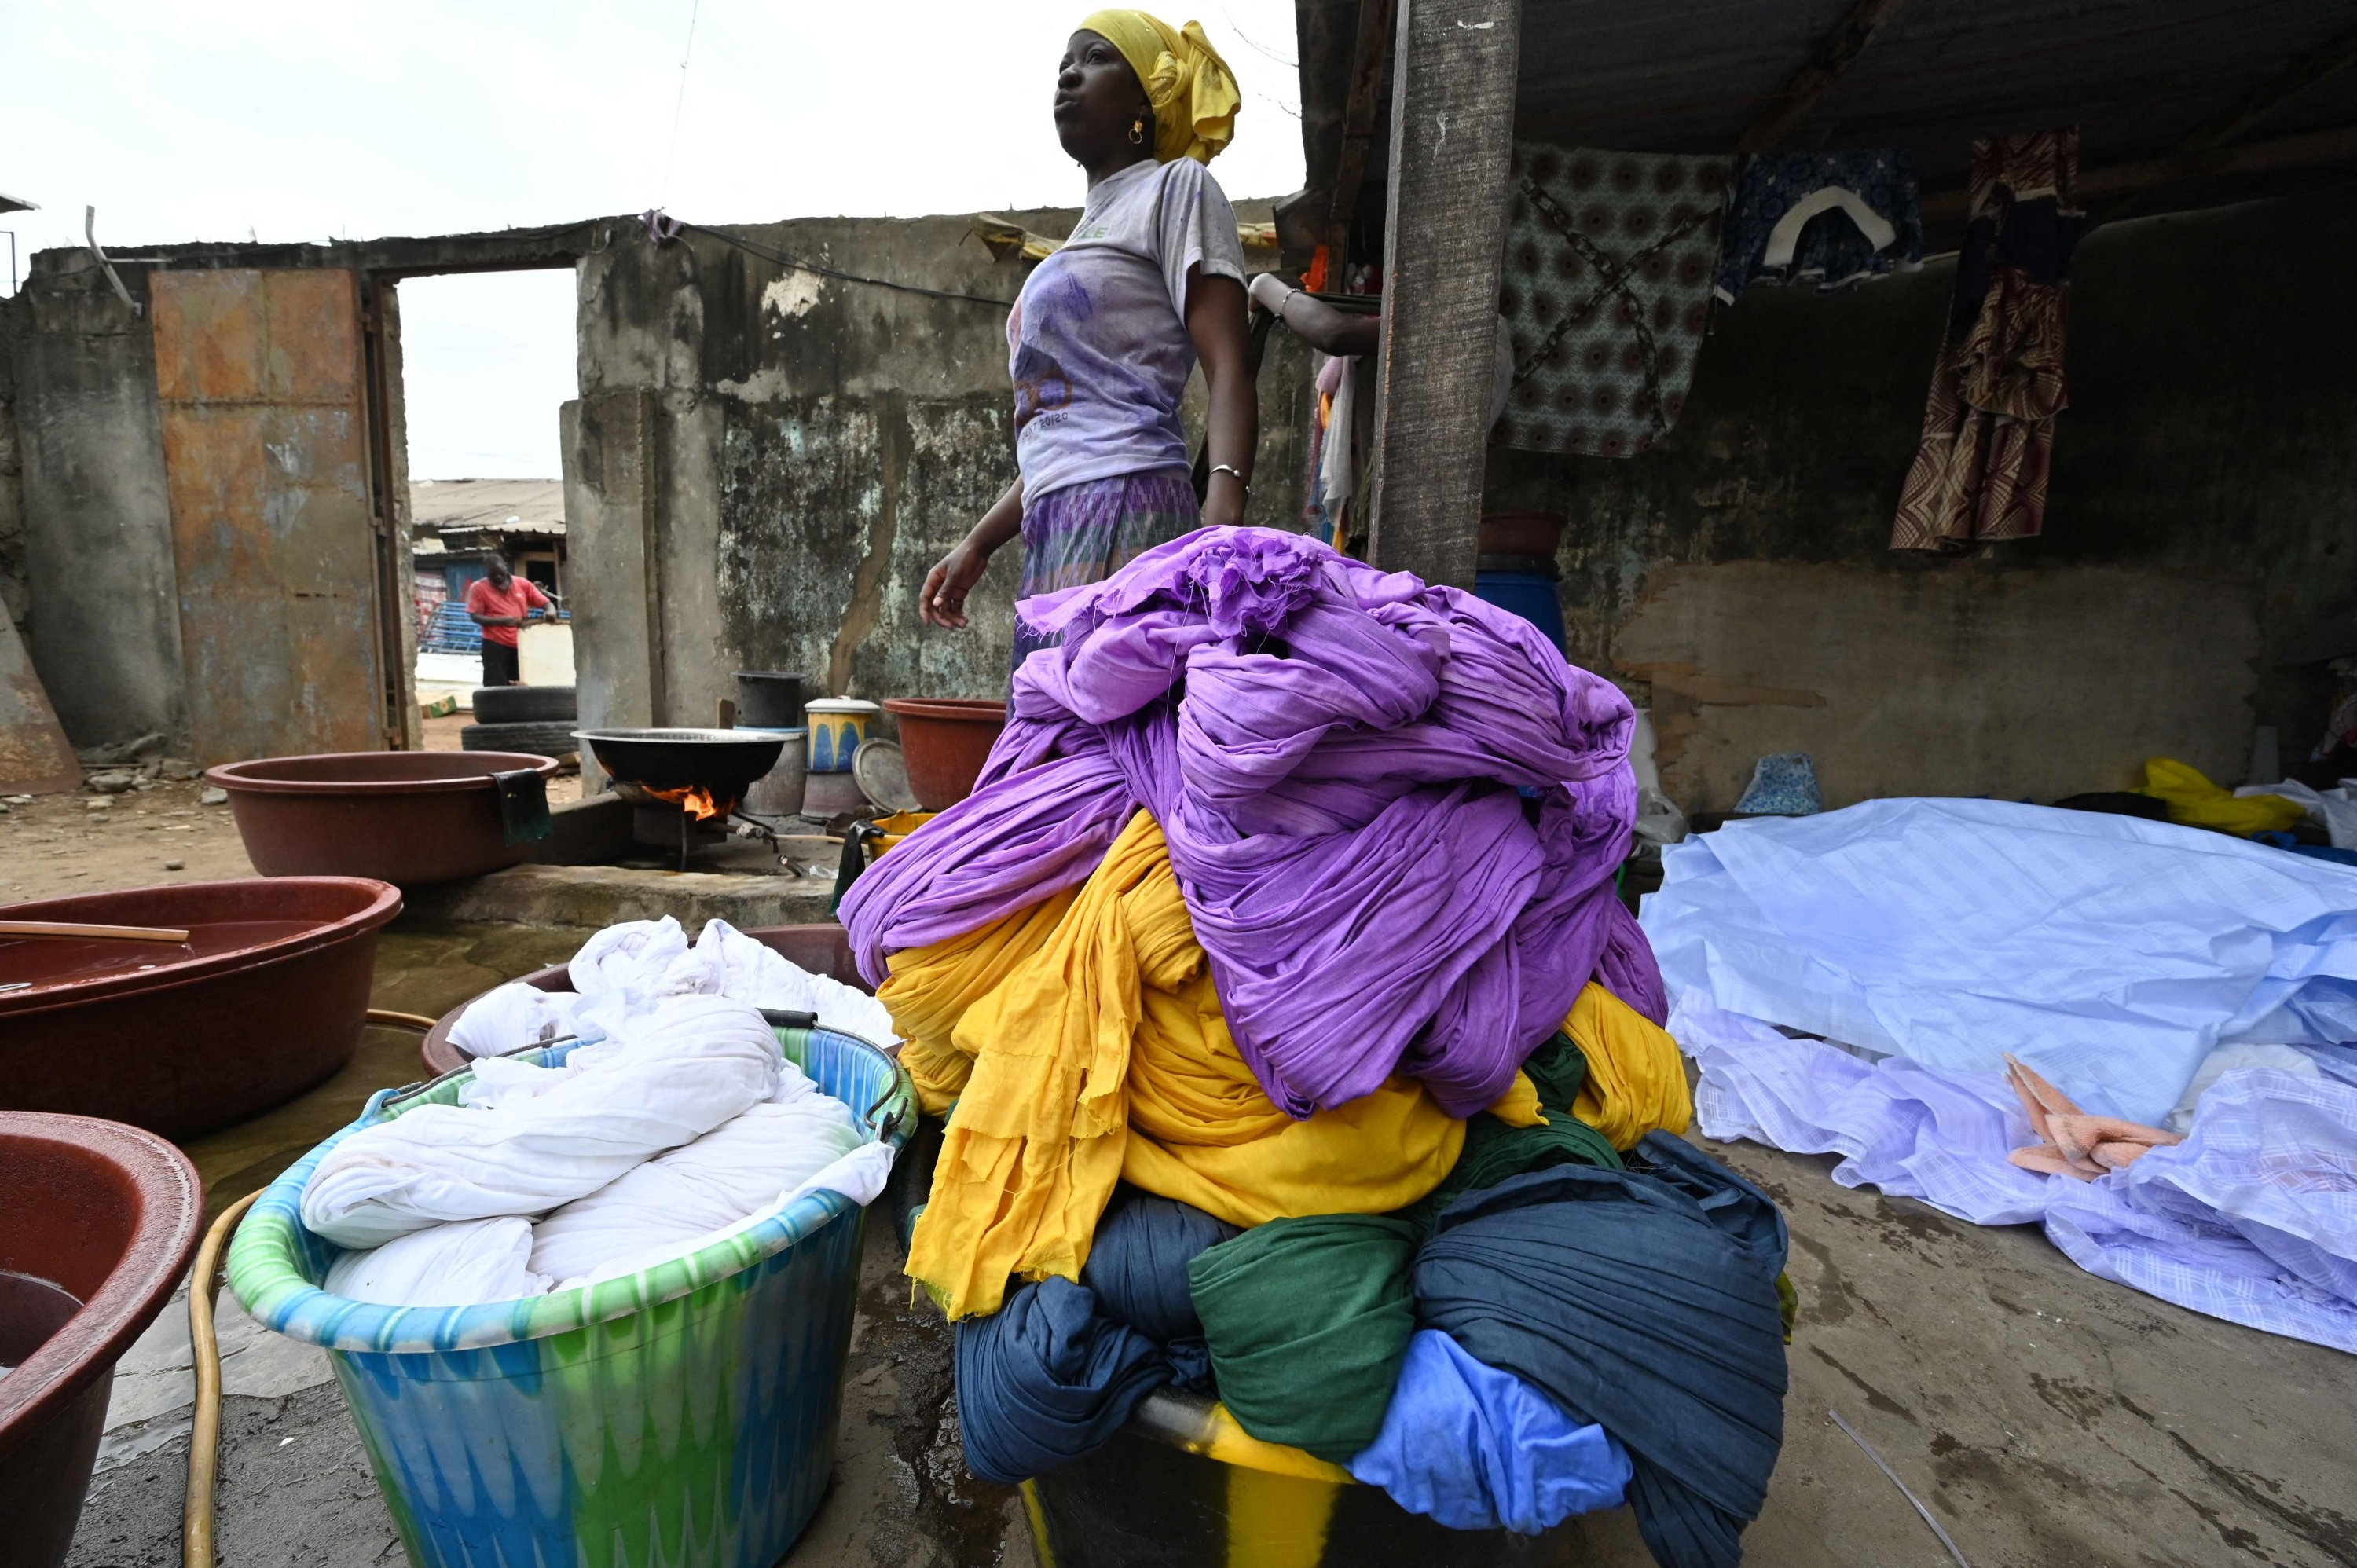 Dyed cotton fabric is seen at Pathe'O house in the popular district of Treichville in Abidjan, Ivory Coast, March 31, 2021. (AFP Photo)